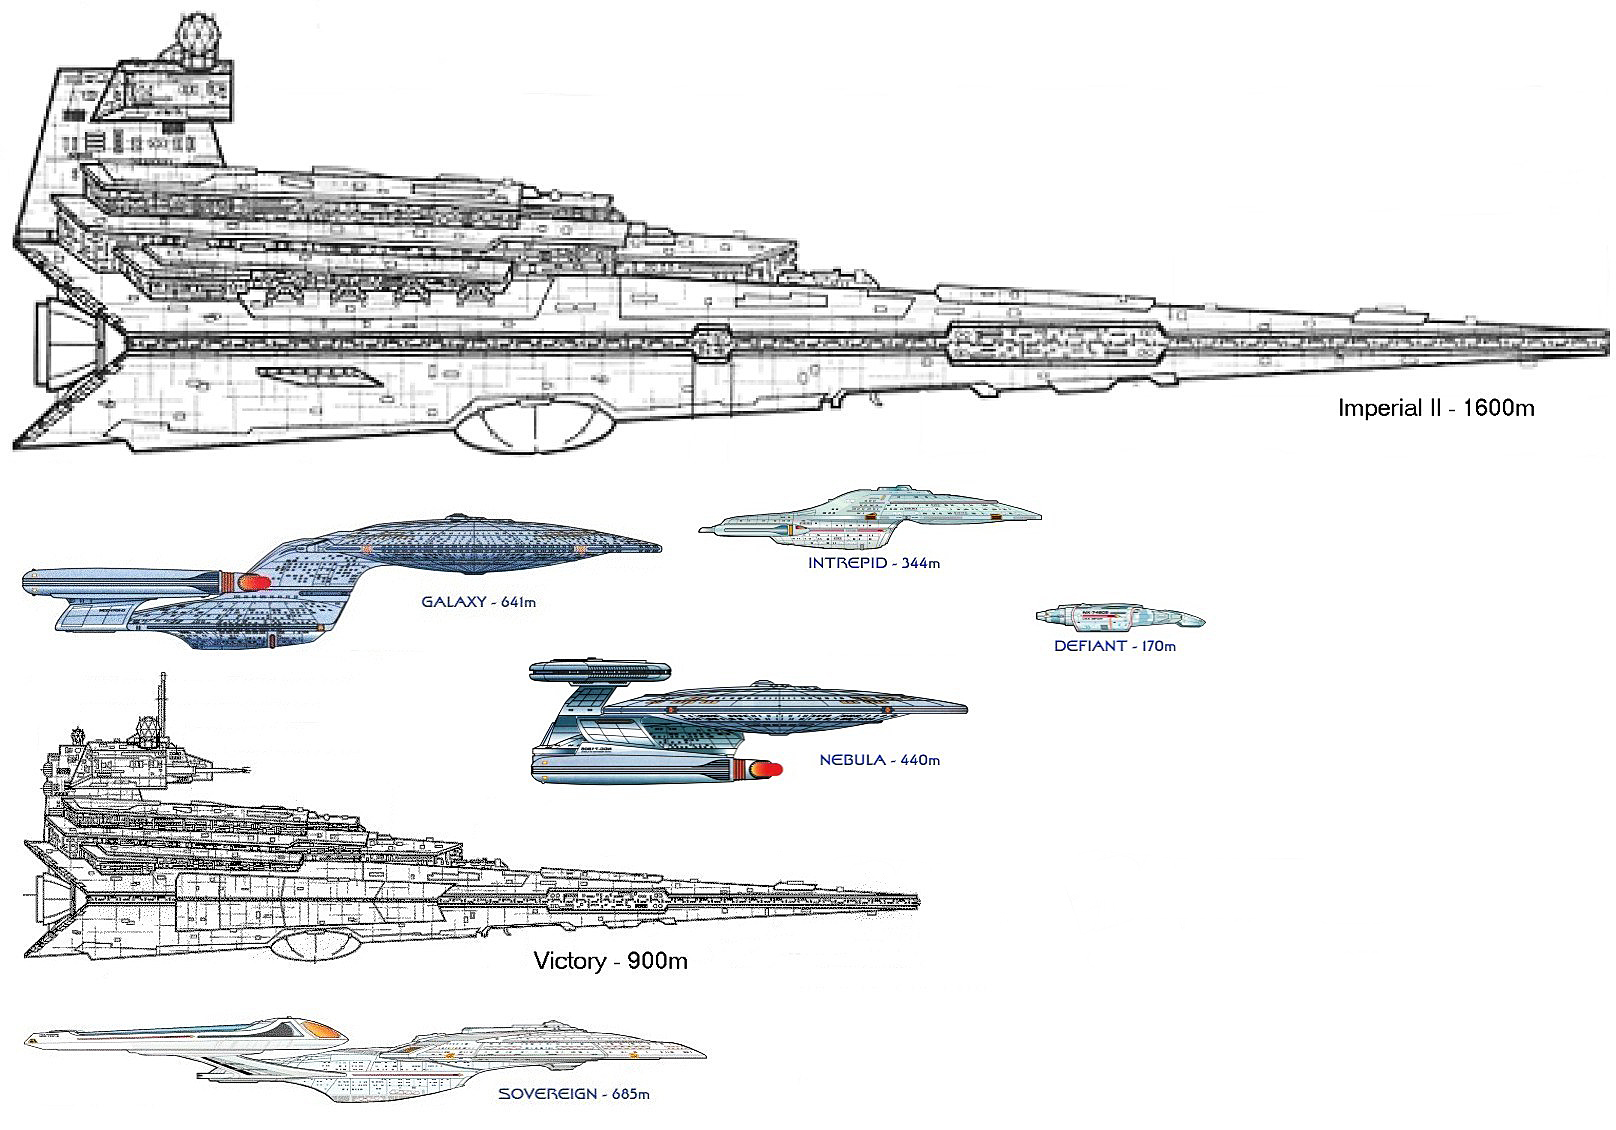 Which is More Technologically Advanced: Star Wars or Star Trek